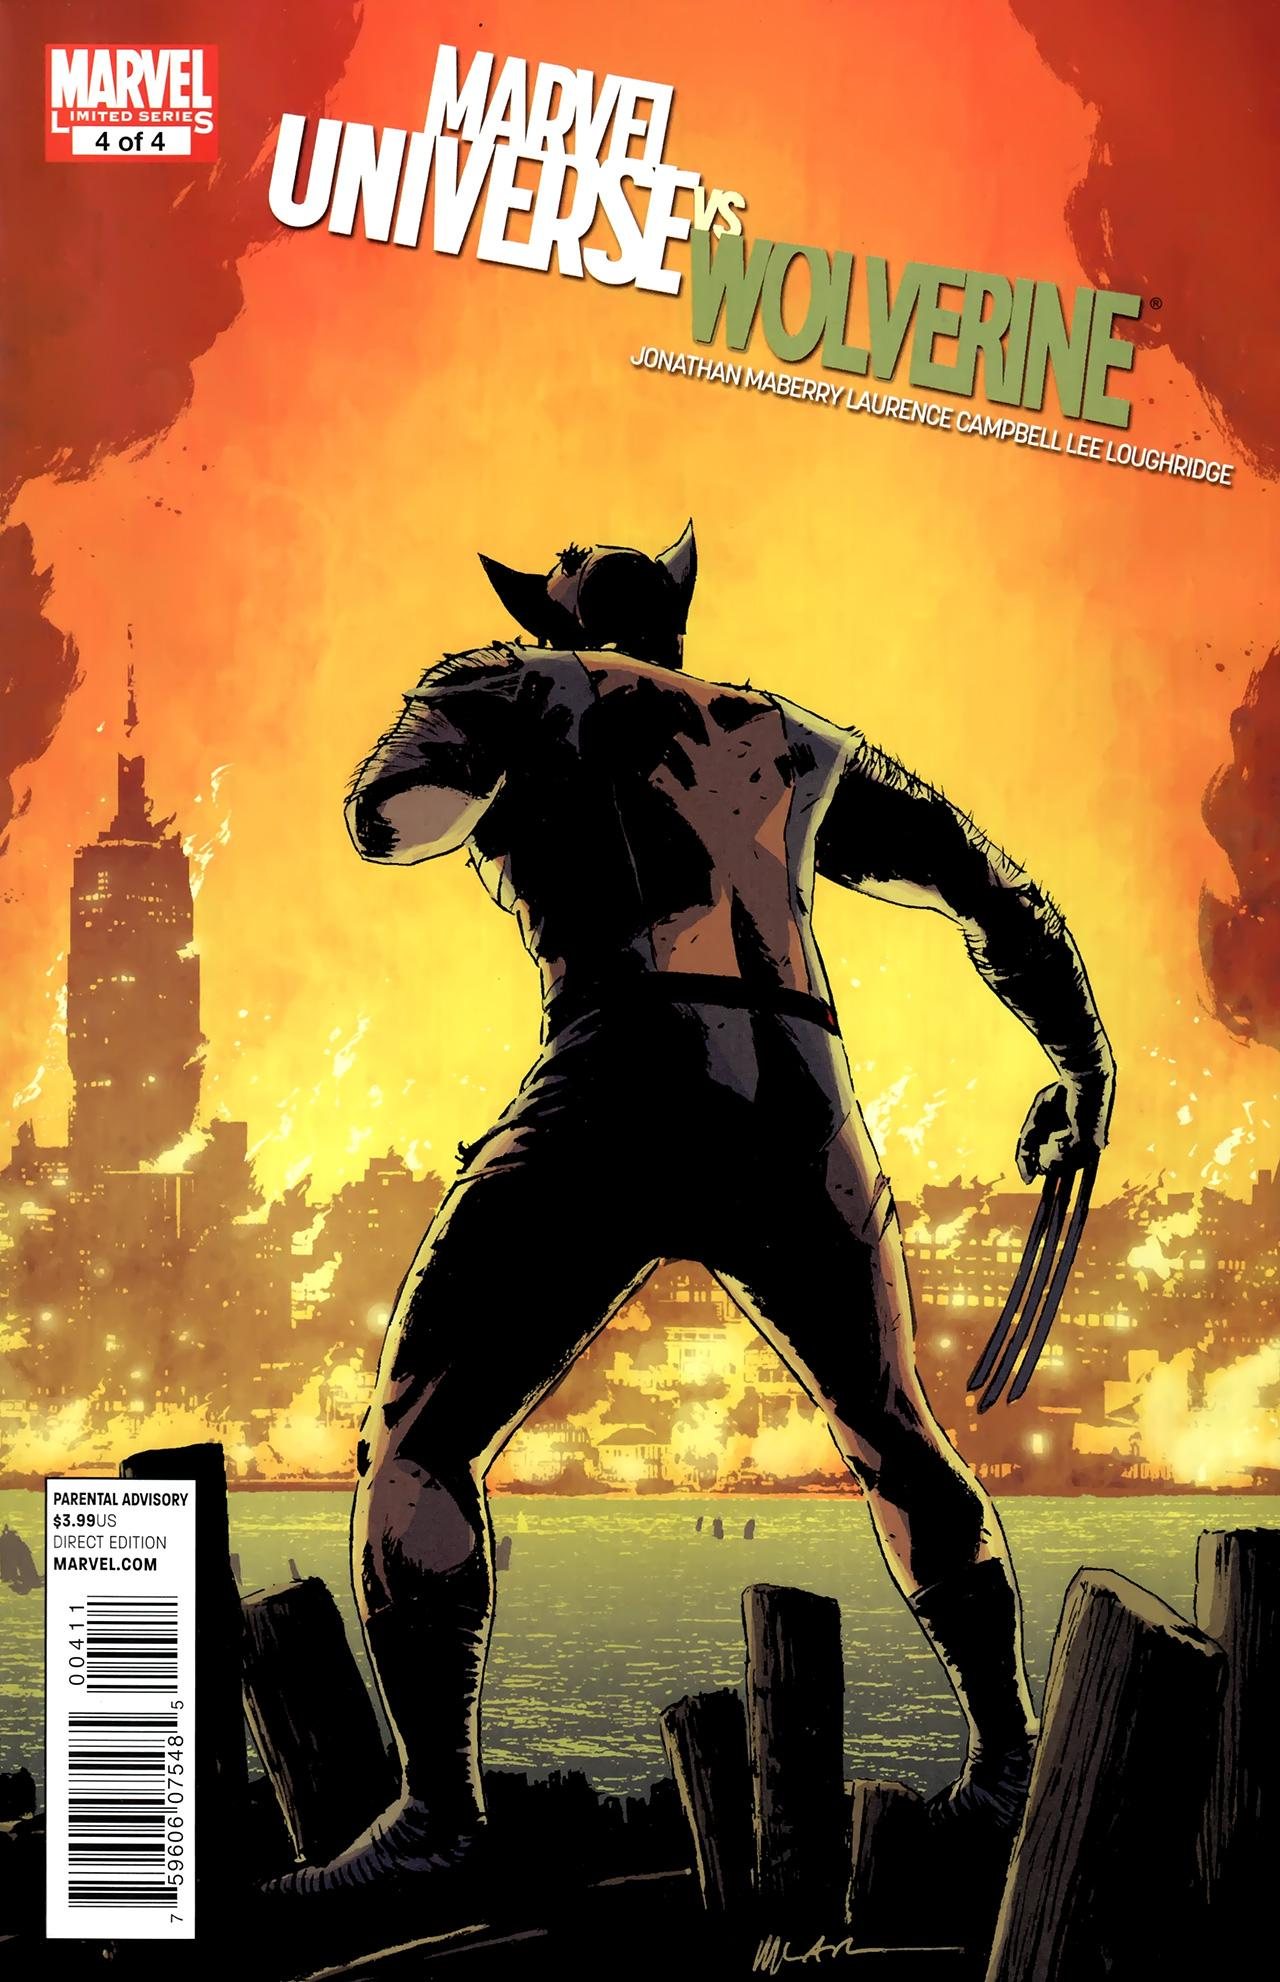 Marvel Universe vs. Wolverine #4 (of 04) (2011) free download